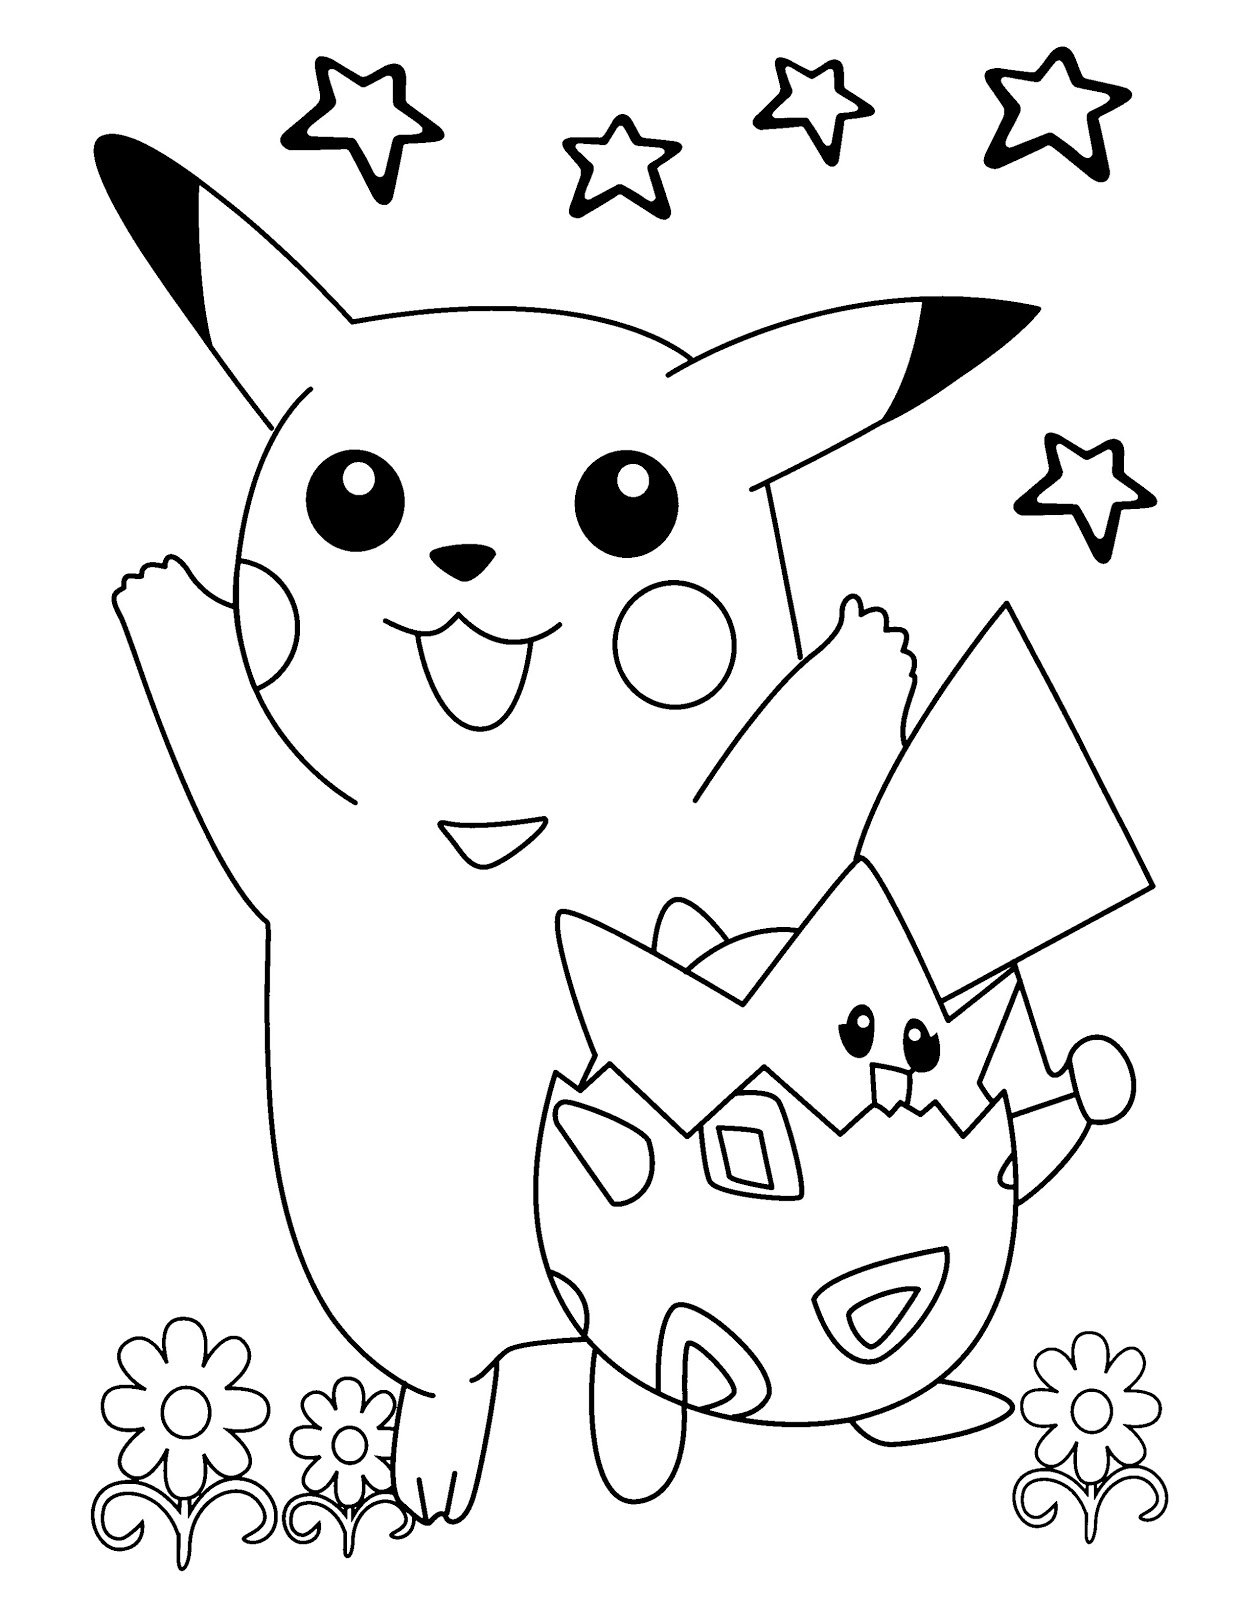 best printable pokemon pikachu and togepi coloring pages - free pokemon coloring books